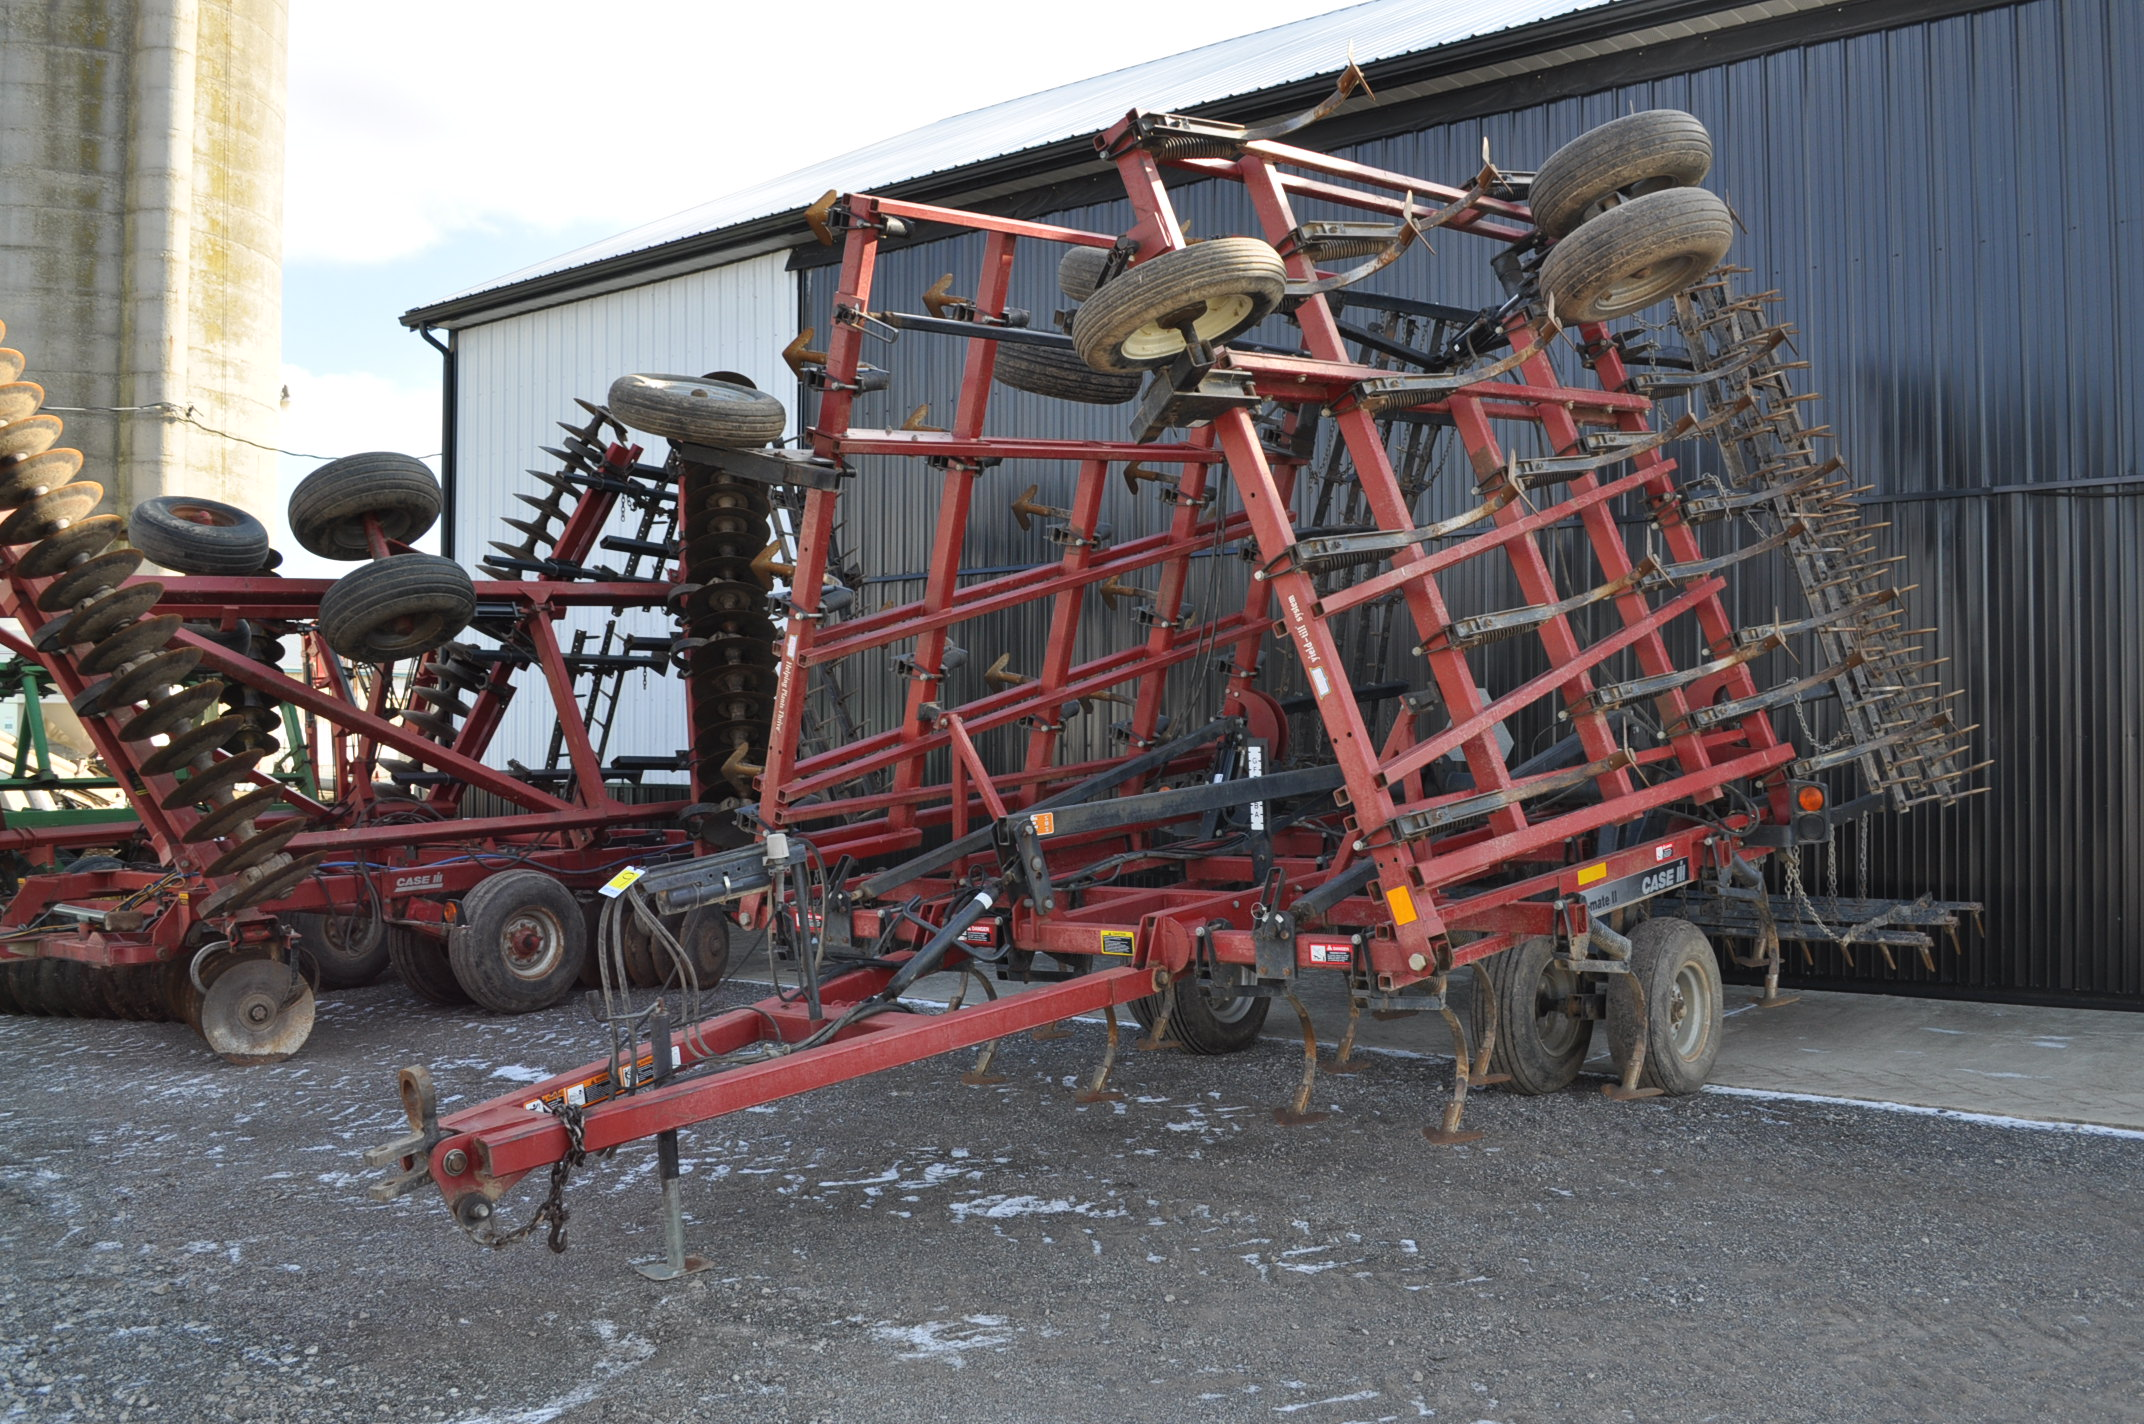 30' Case IH TigerMate II field cultivator, walking tandems, 5 bar spike tooth harrow, rear hitch and